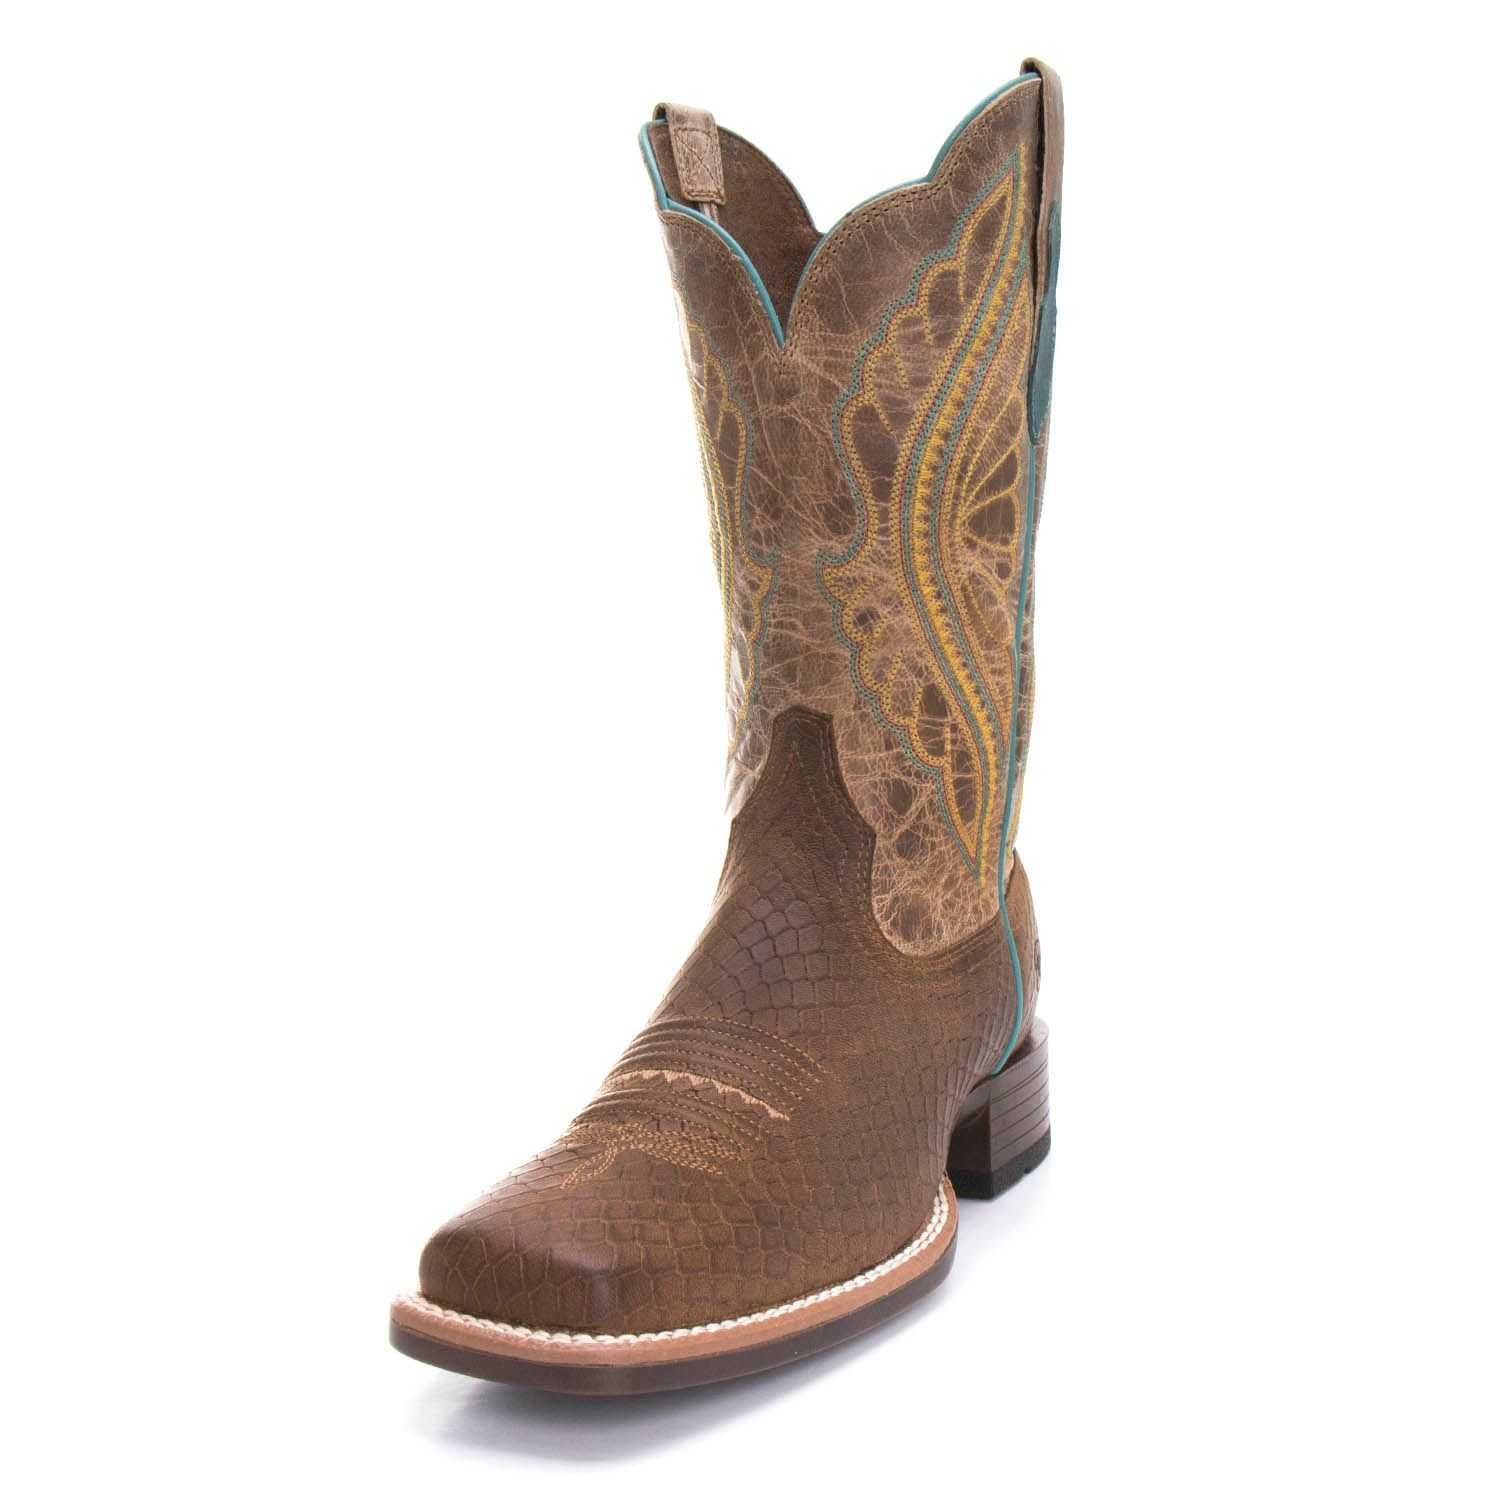 03c25b4b995 Ariat Womens Primetime Dragon Print Western Boots 10027376 in 2019 ...